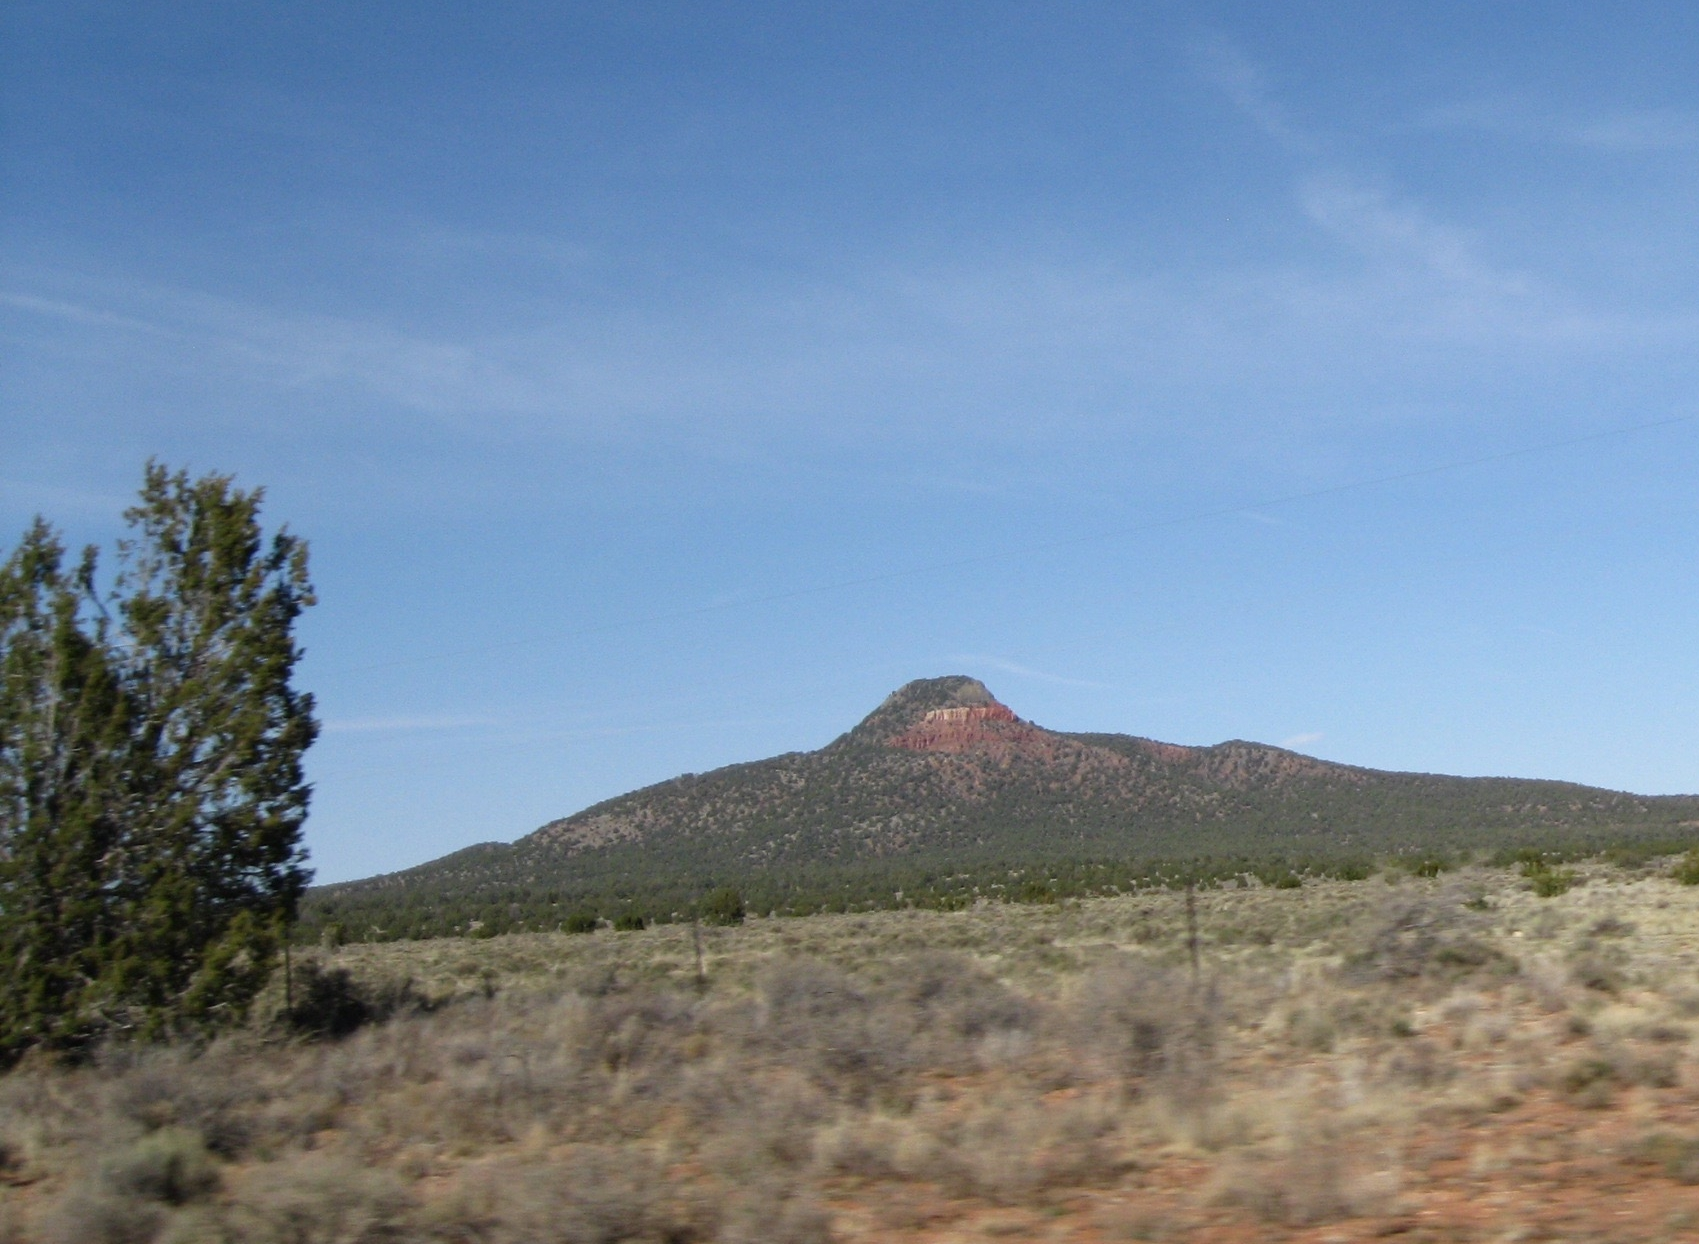 Picture from Sipra's trip to the Southwest in the spring.